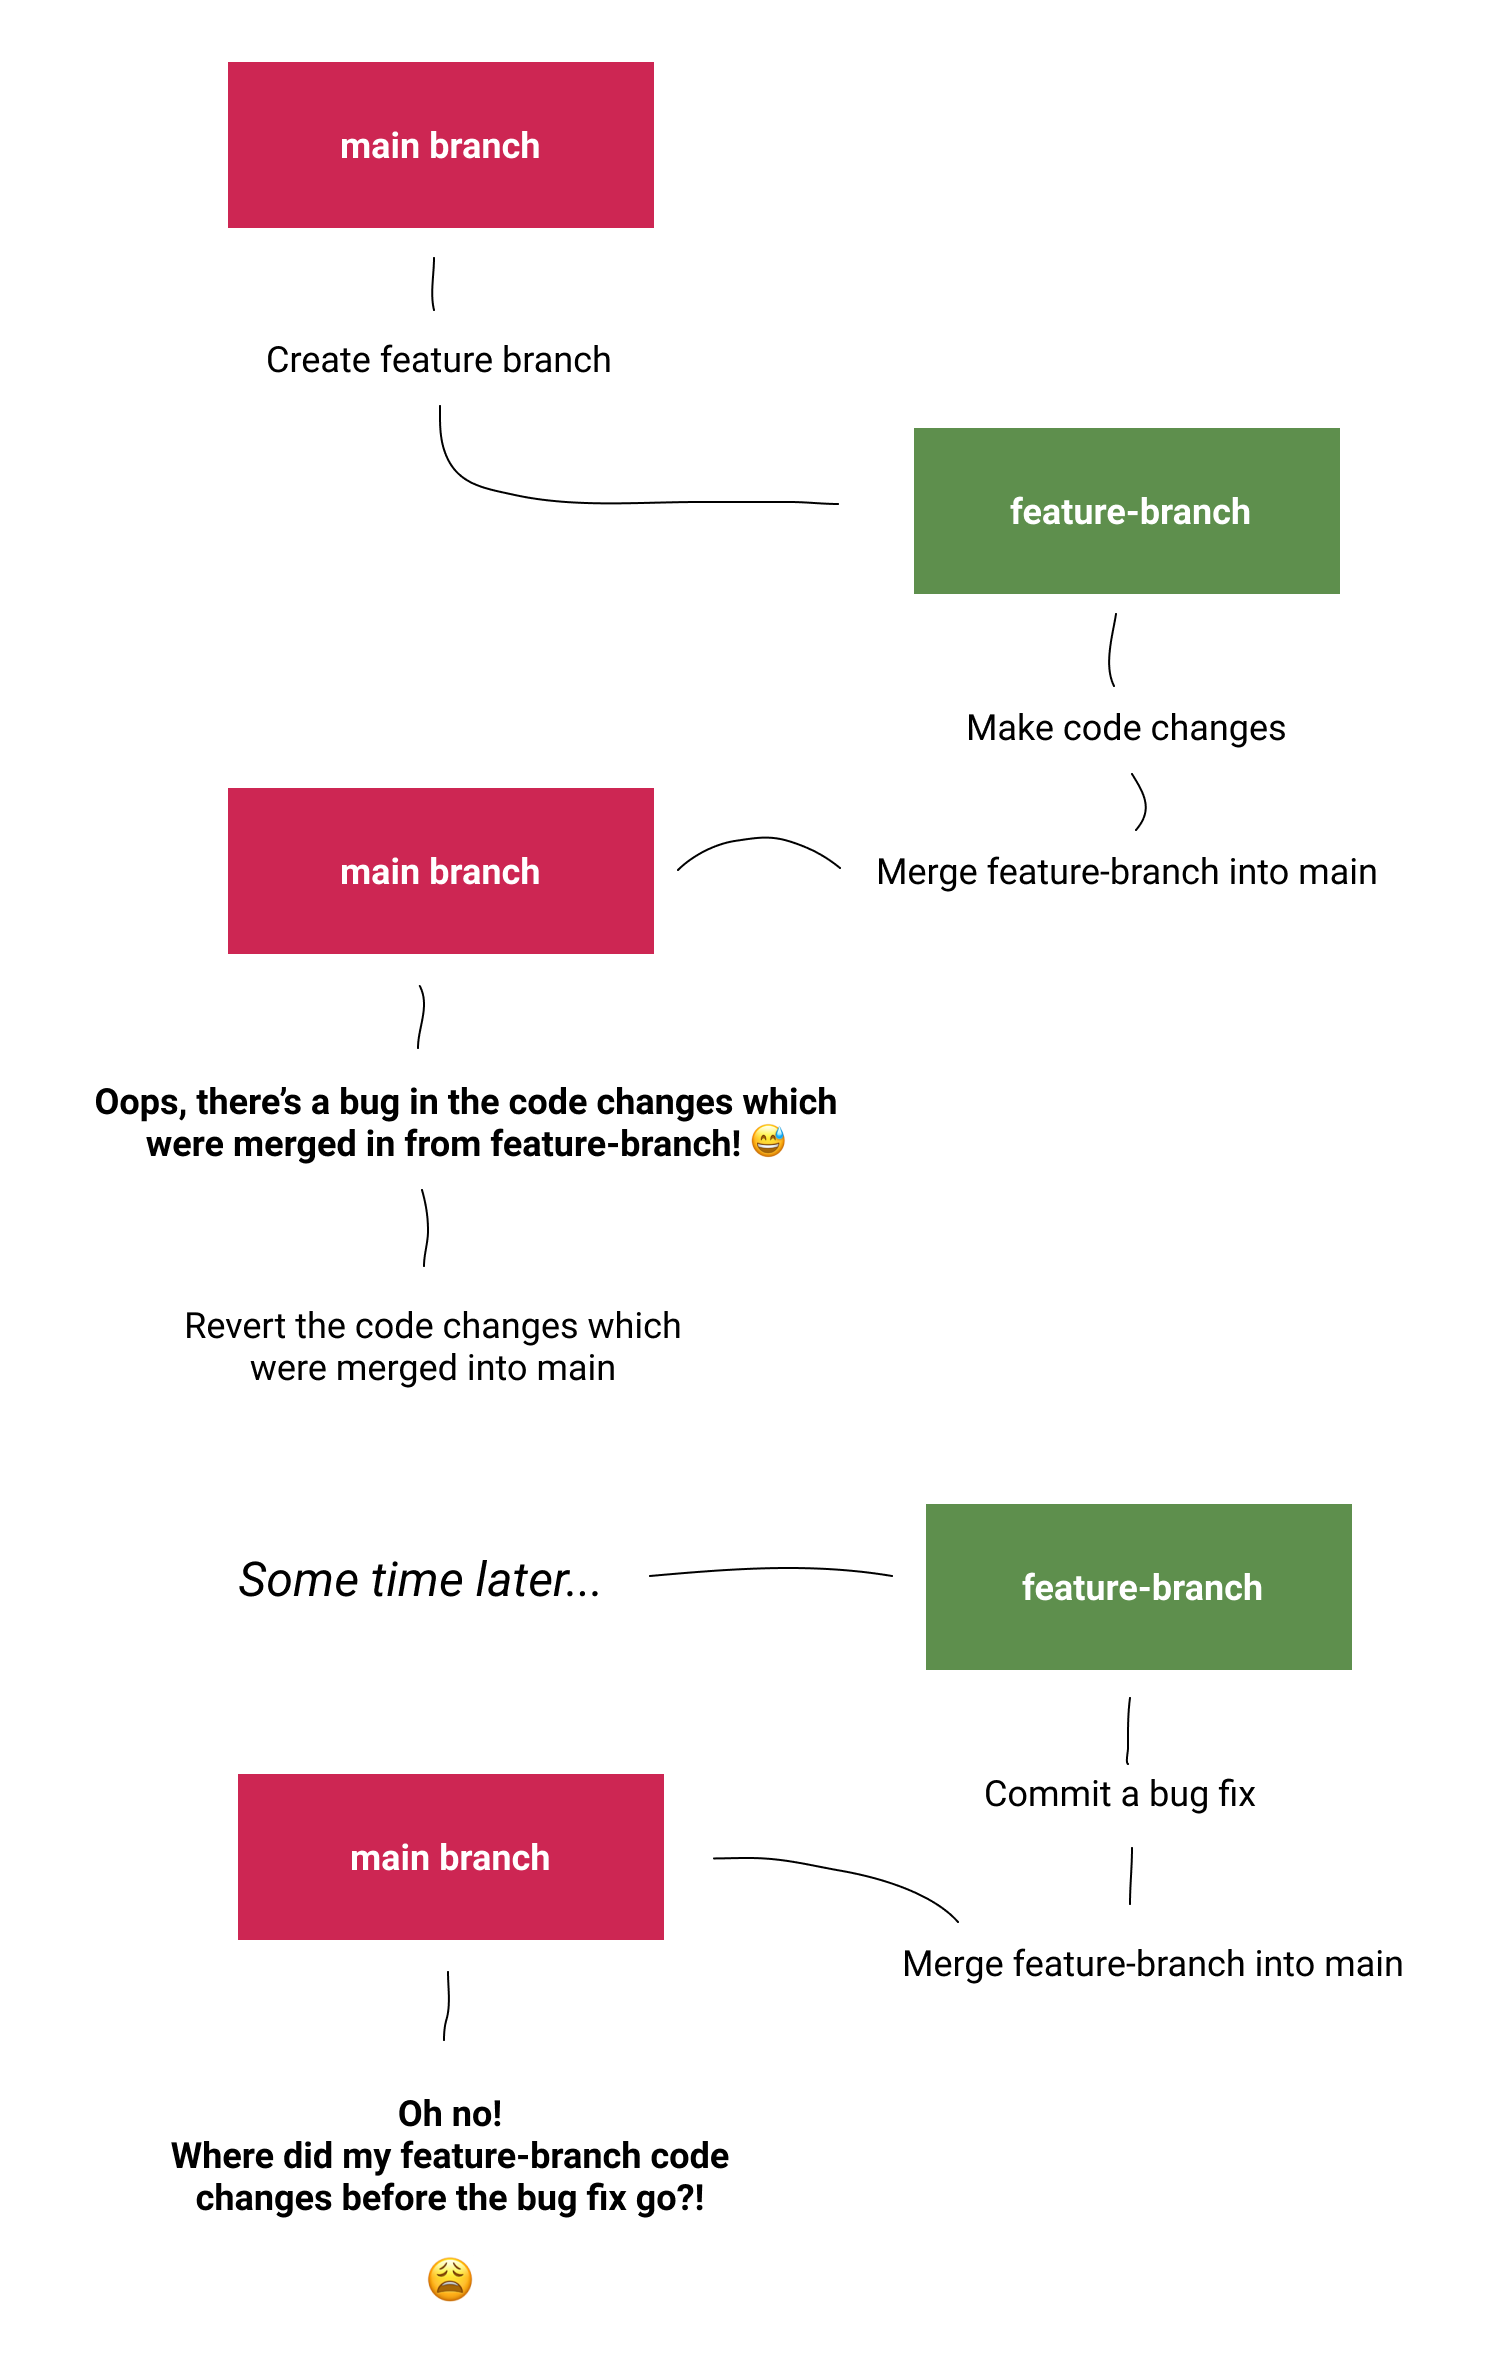 Diagram showing the git workflow of merging a feature branch into the main branch, finding a bug, reverting the changes which were merged in, then adding a bug fix to the feature branch, merging it into the main branch again and finding that the code changes made in the feature branch before the bug fix are not showing in the main branch.